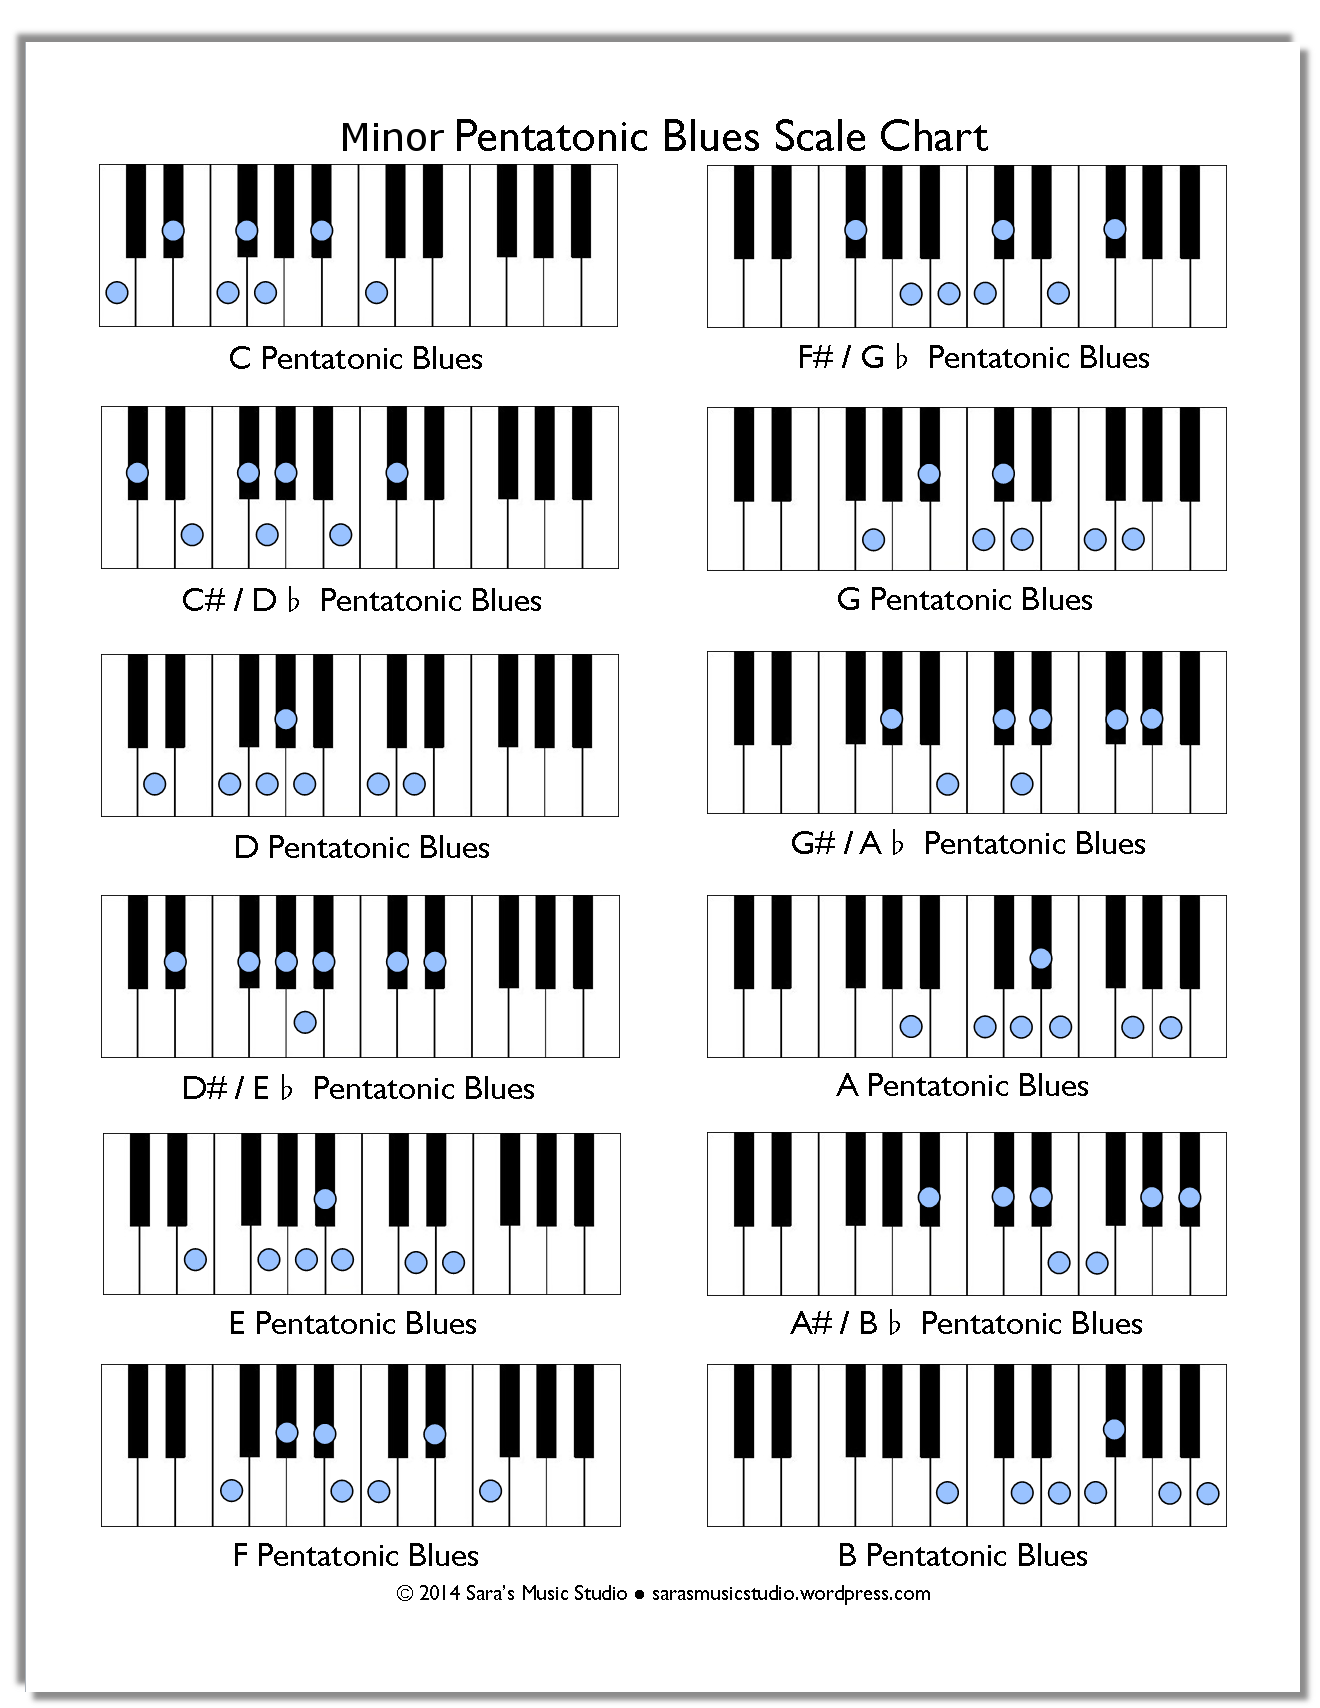 Notes On Piano Keyboard Diagram 1993 Bluebird Bus Wiring Free Minor Pentatonic Blues Scale Chart Lessons